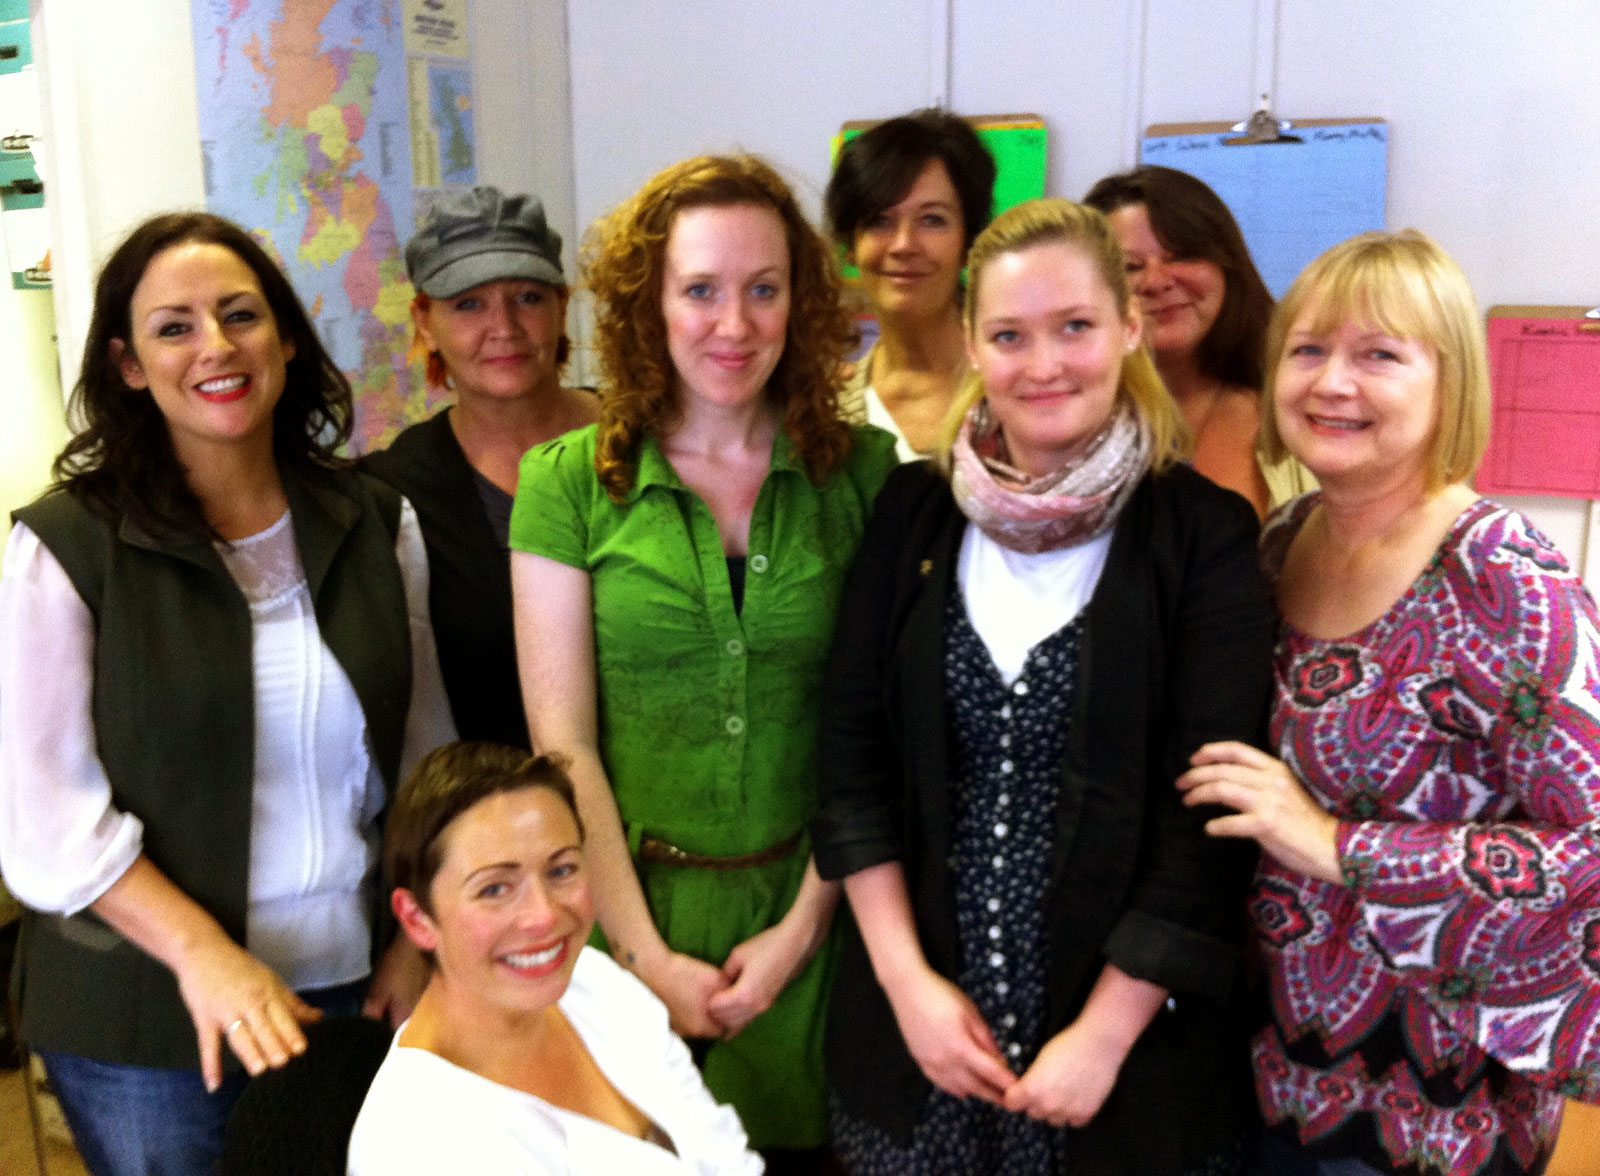 Theatre for Schools team group photo